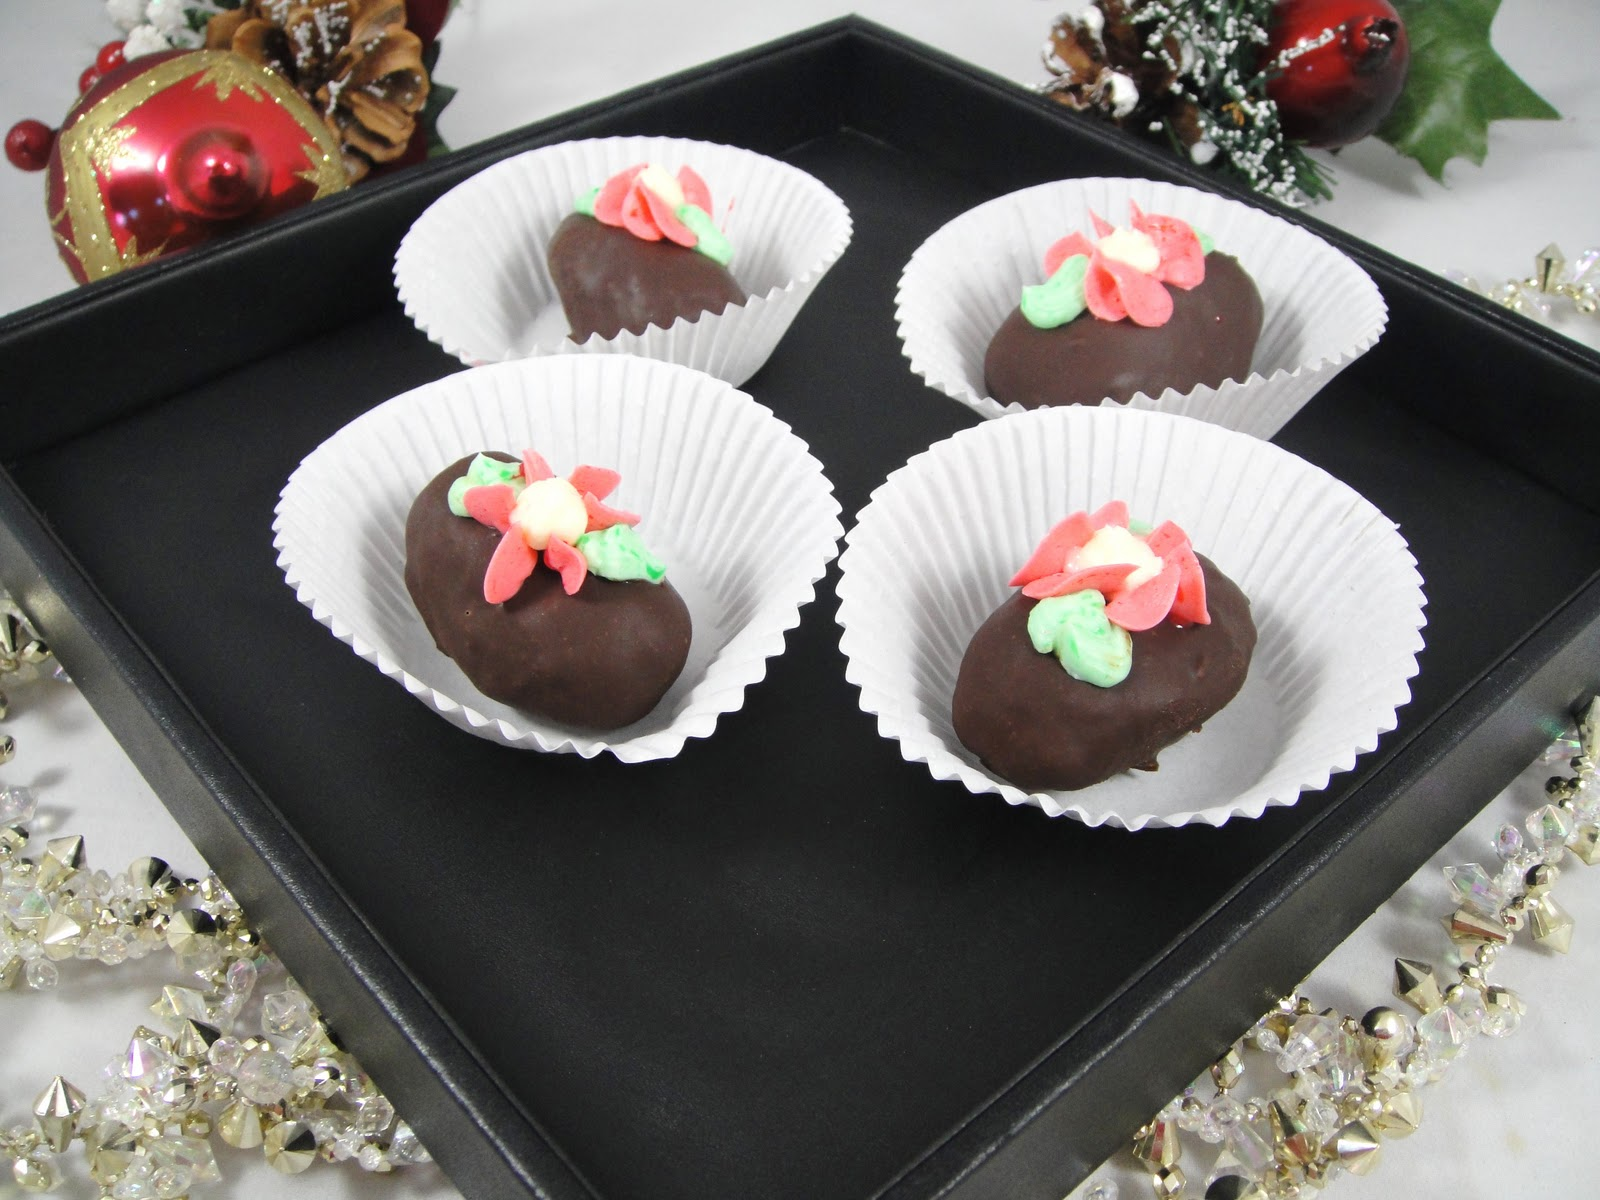 These Are Cake And Cream Rolled Into Small Potato Shape Cakes Then Dipped In Chocolate Coating Two Bites Per Make Them The Perfect Mini Dessert